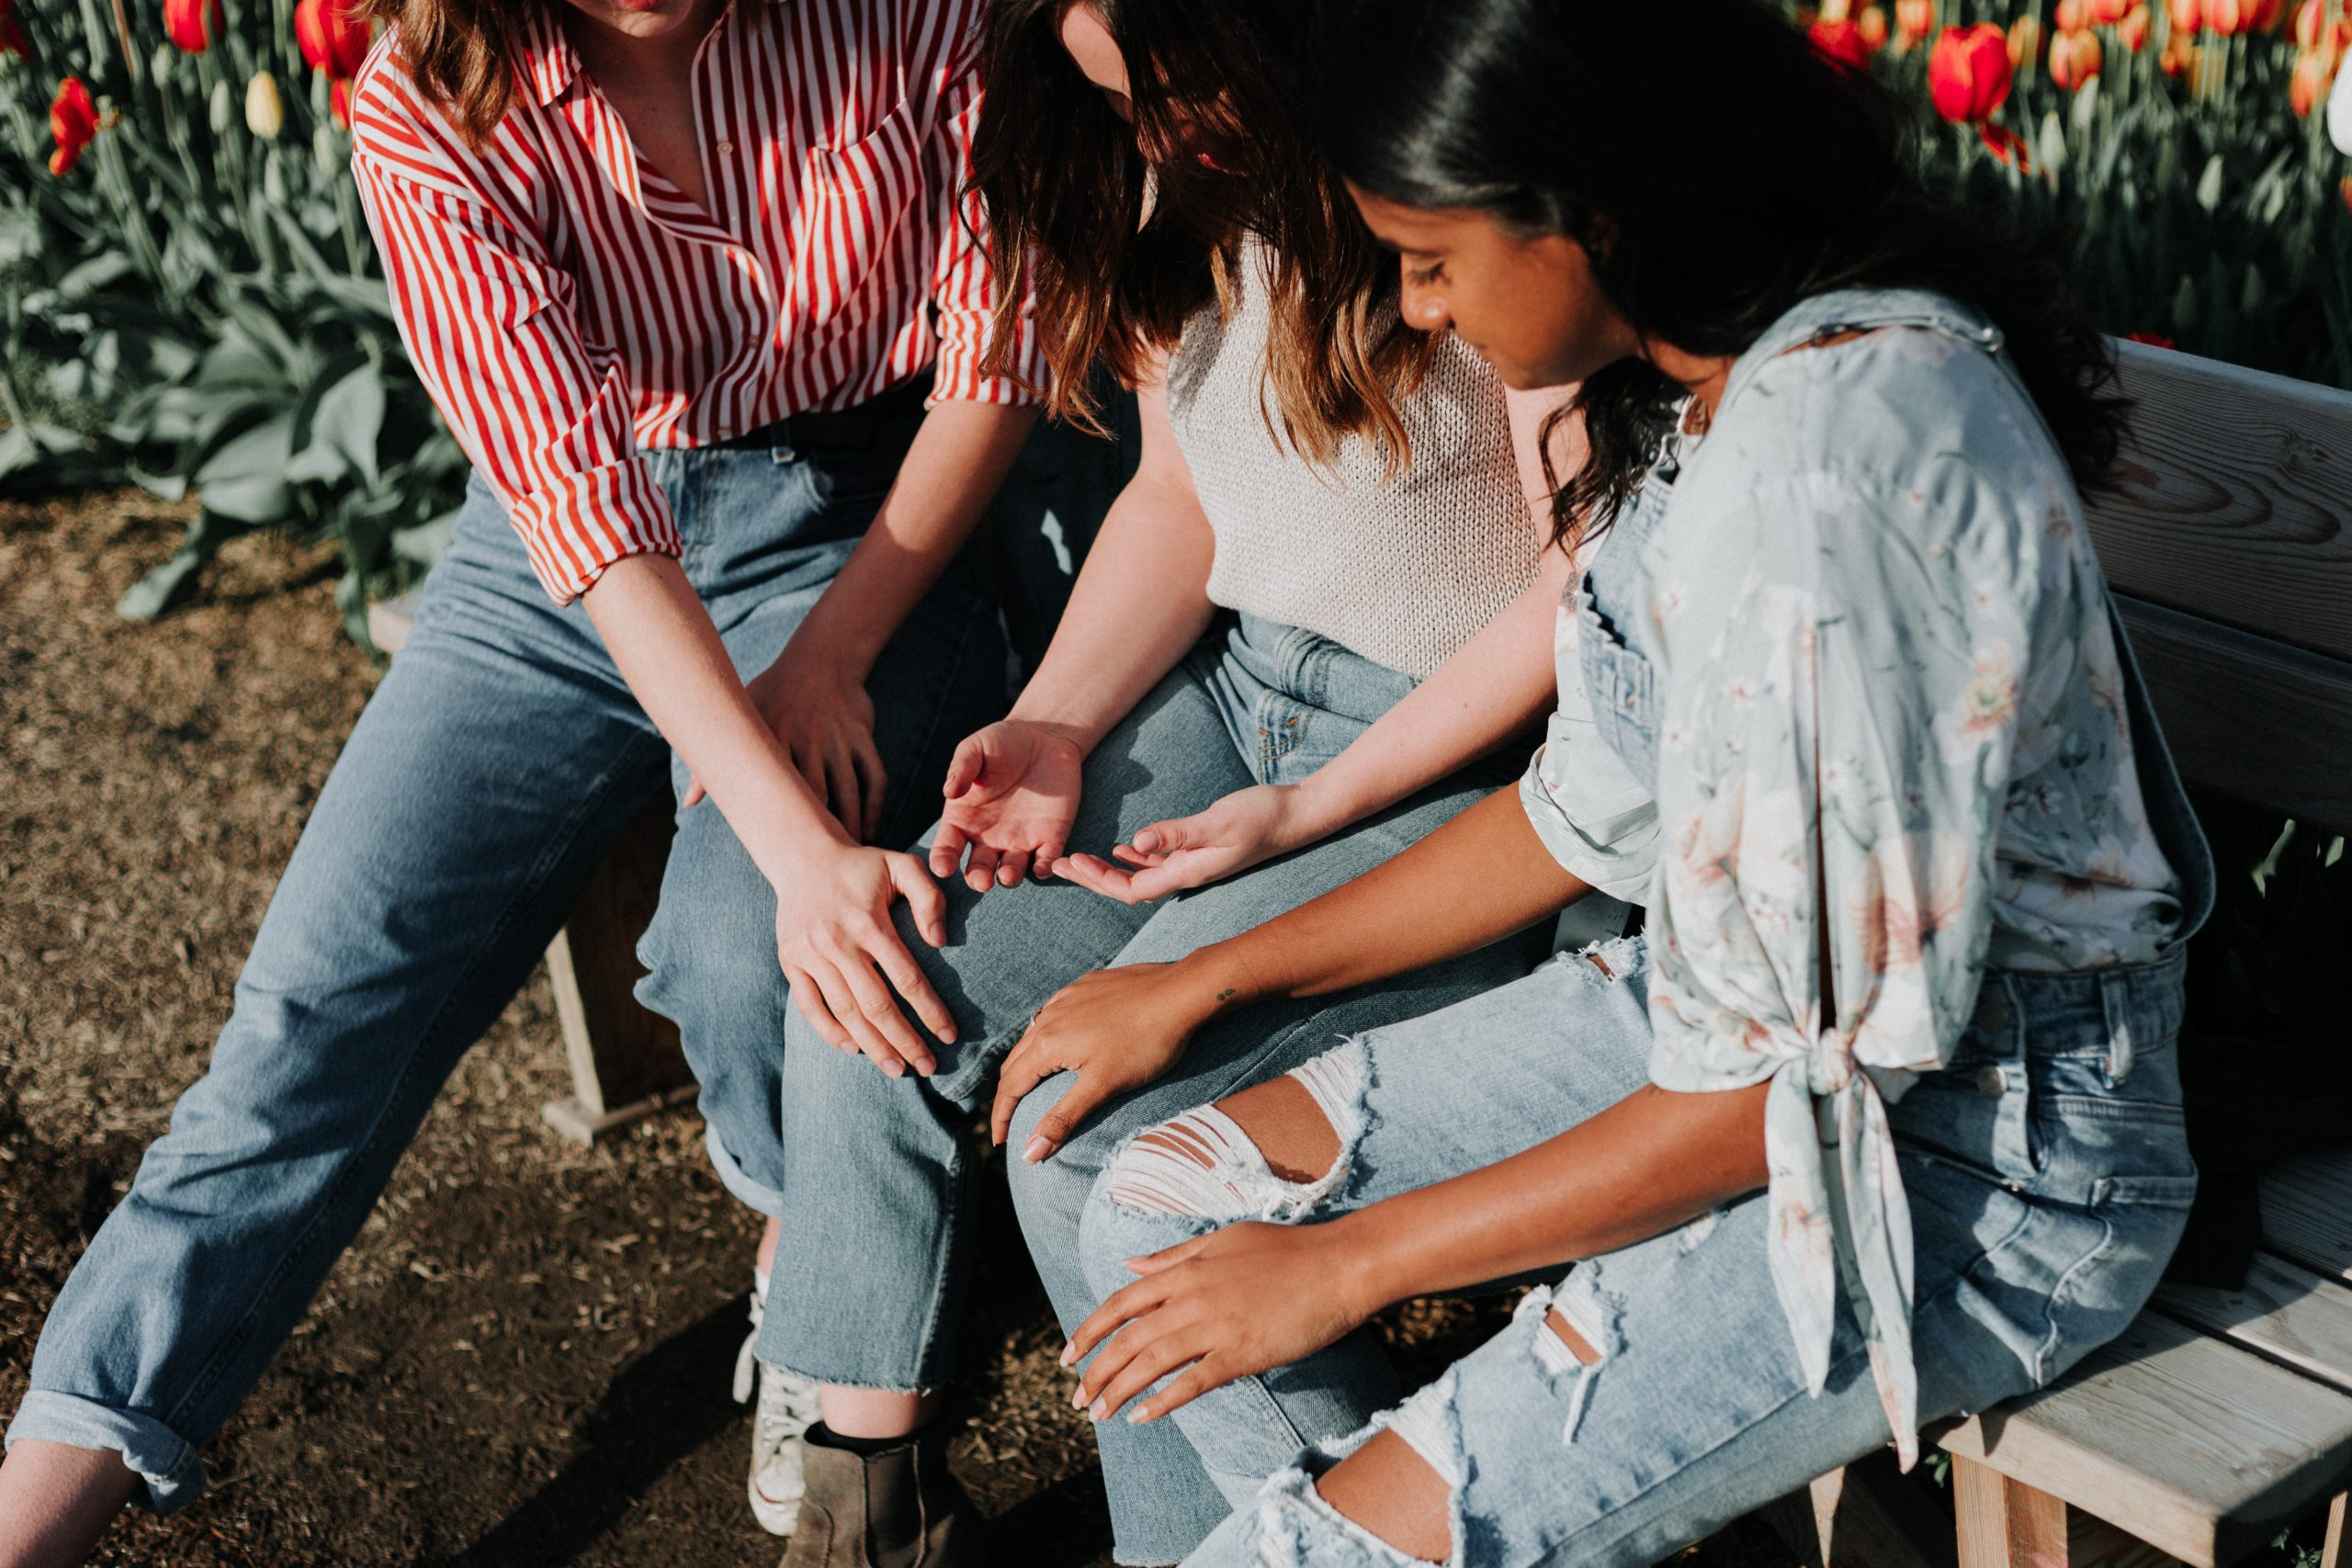 three women sitting on a bench holding hands